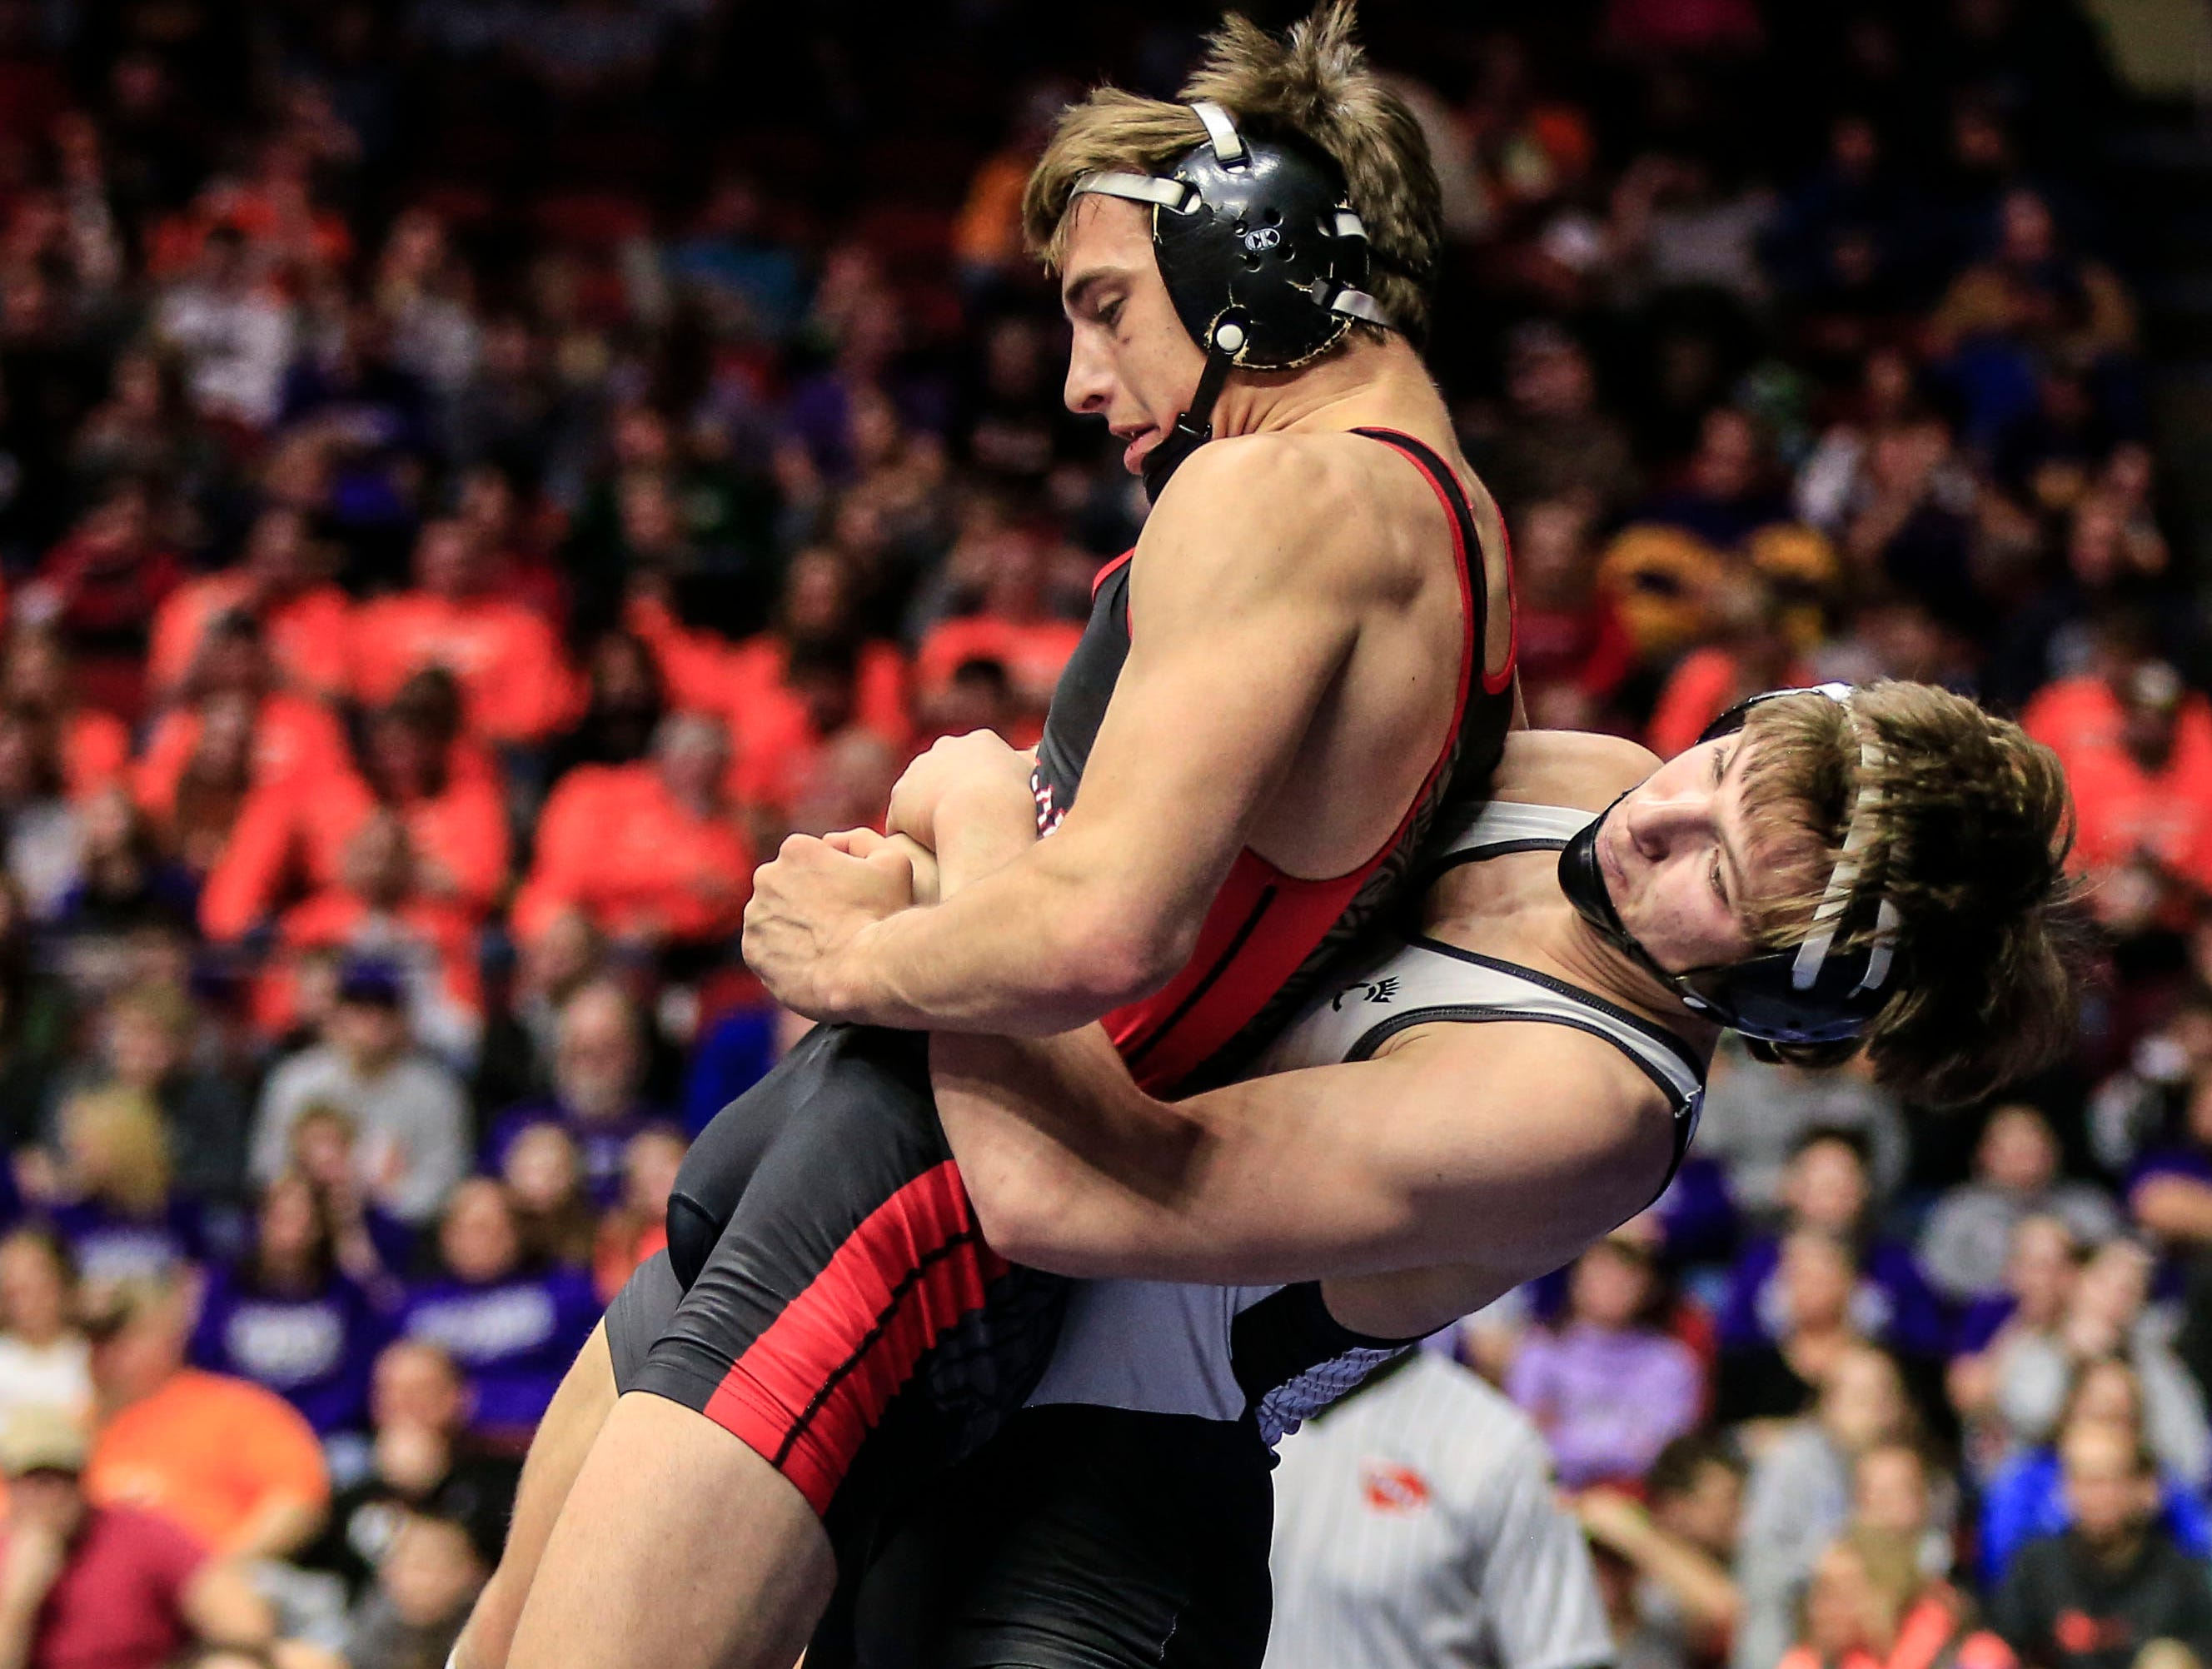 Kyler Rieck of Spirit Lake Park beats Adam Ahrendsen of Union for the 2A wrestling state championship at 152 pounds Saturday, Feb. 16, 2019.